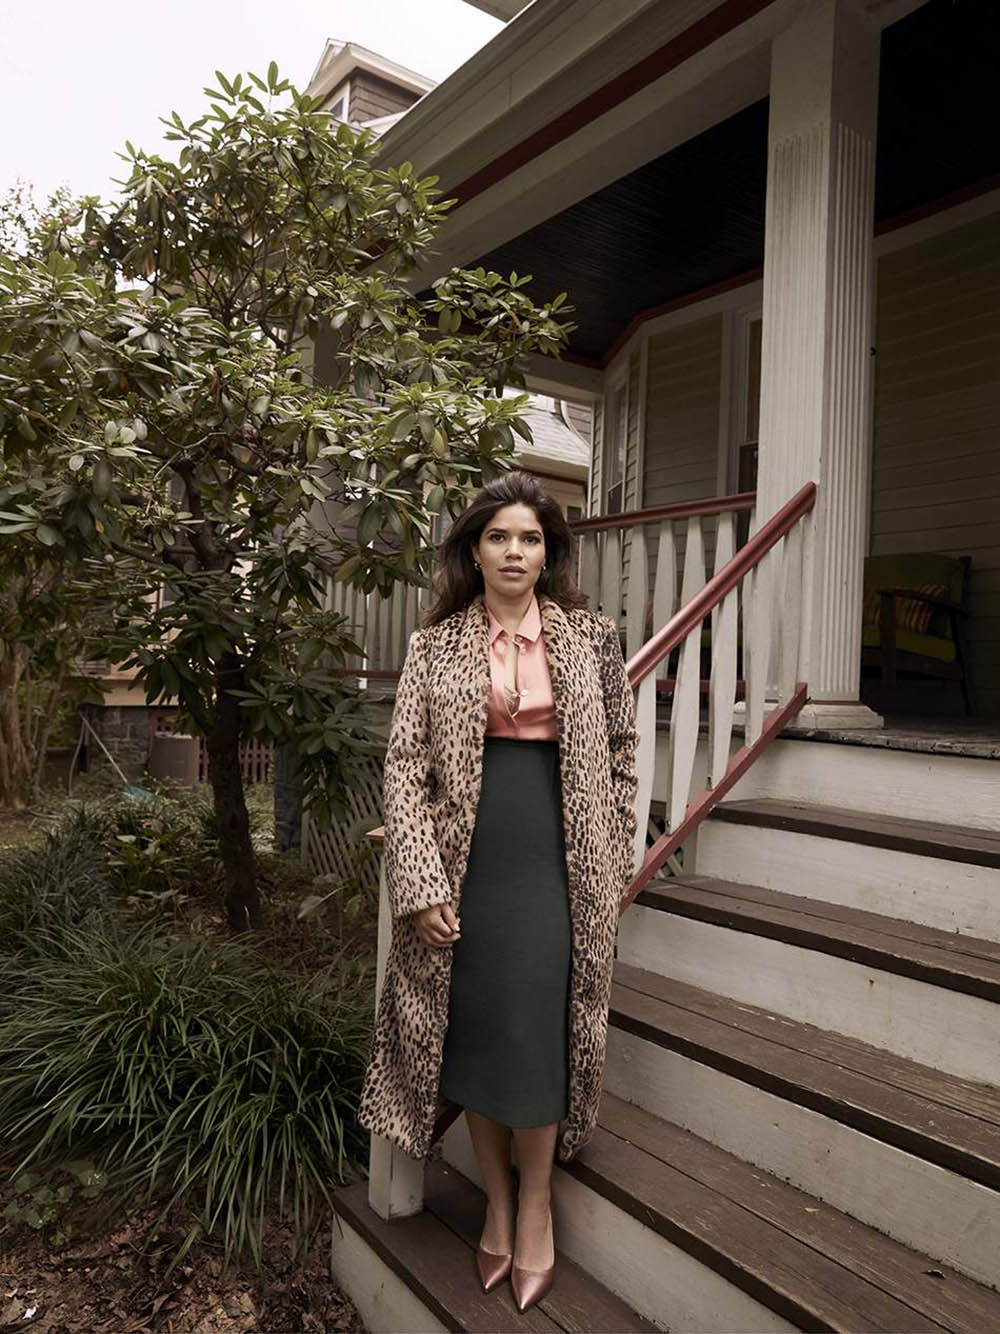 America Ferrera covers Porter Edit October 5th, 2018 by Yelena Yemchuk